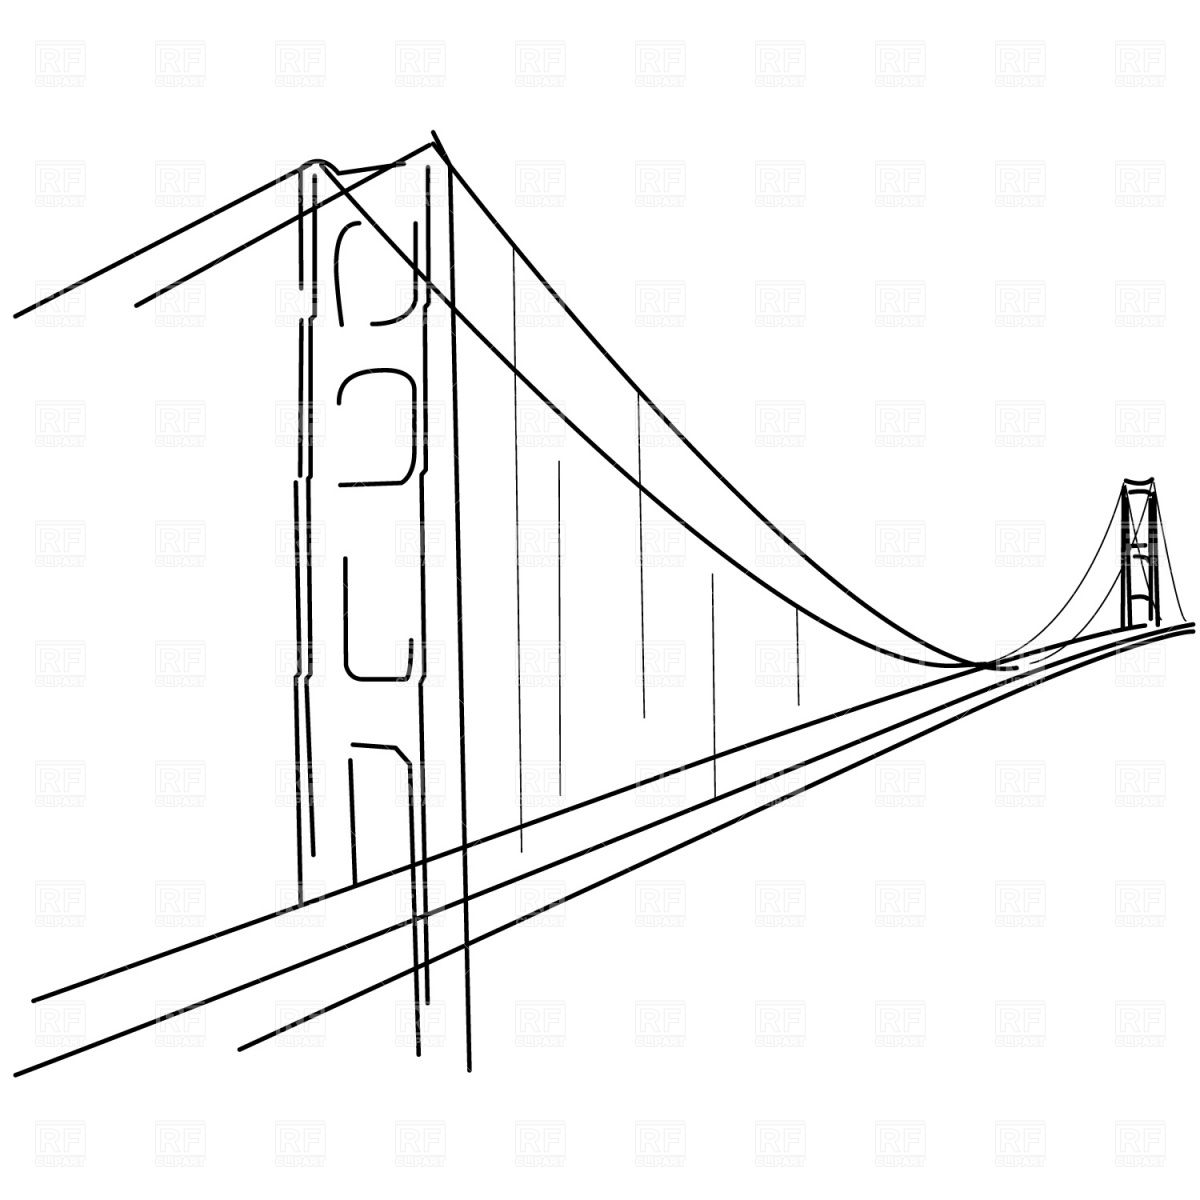 Printable coloring pages golden gate bridge - Google Image Result For Http Img Rfclipart Com Image Big 12 Ea 79 Symbolic Golden Gate Bridge Silhouette Download Royalty Free Vector File Eps 18